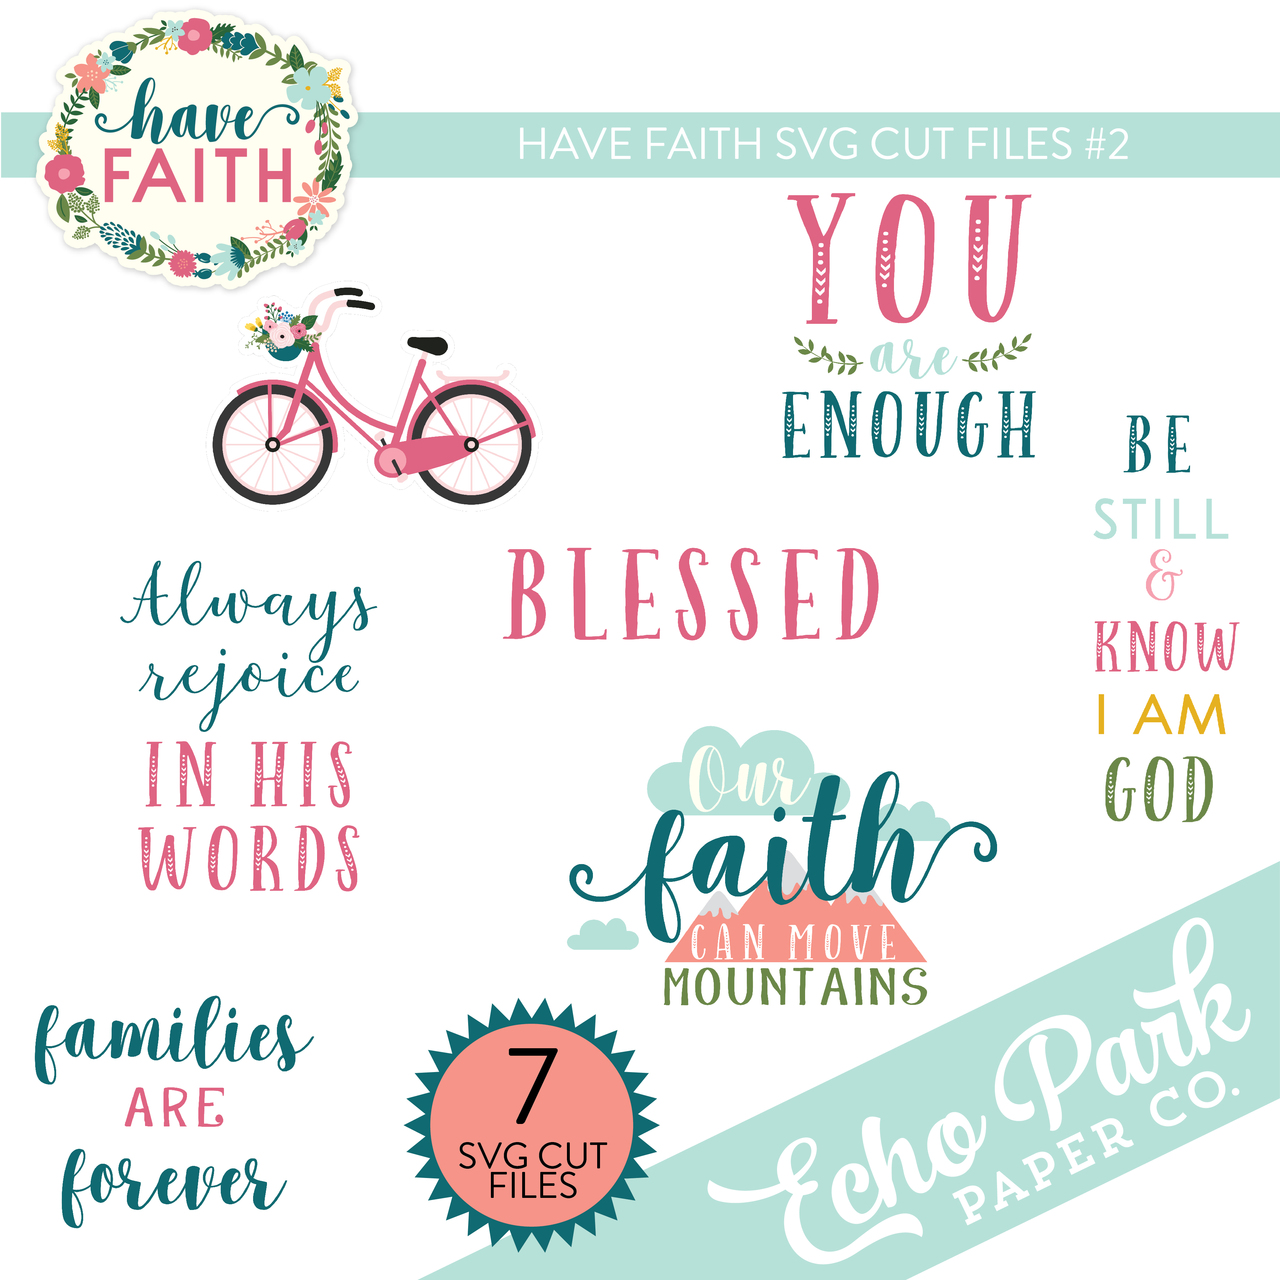 Have Faith Svg Cut Files 2 Snap Click Supply Co